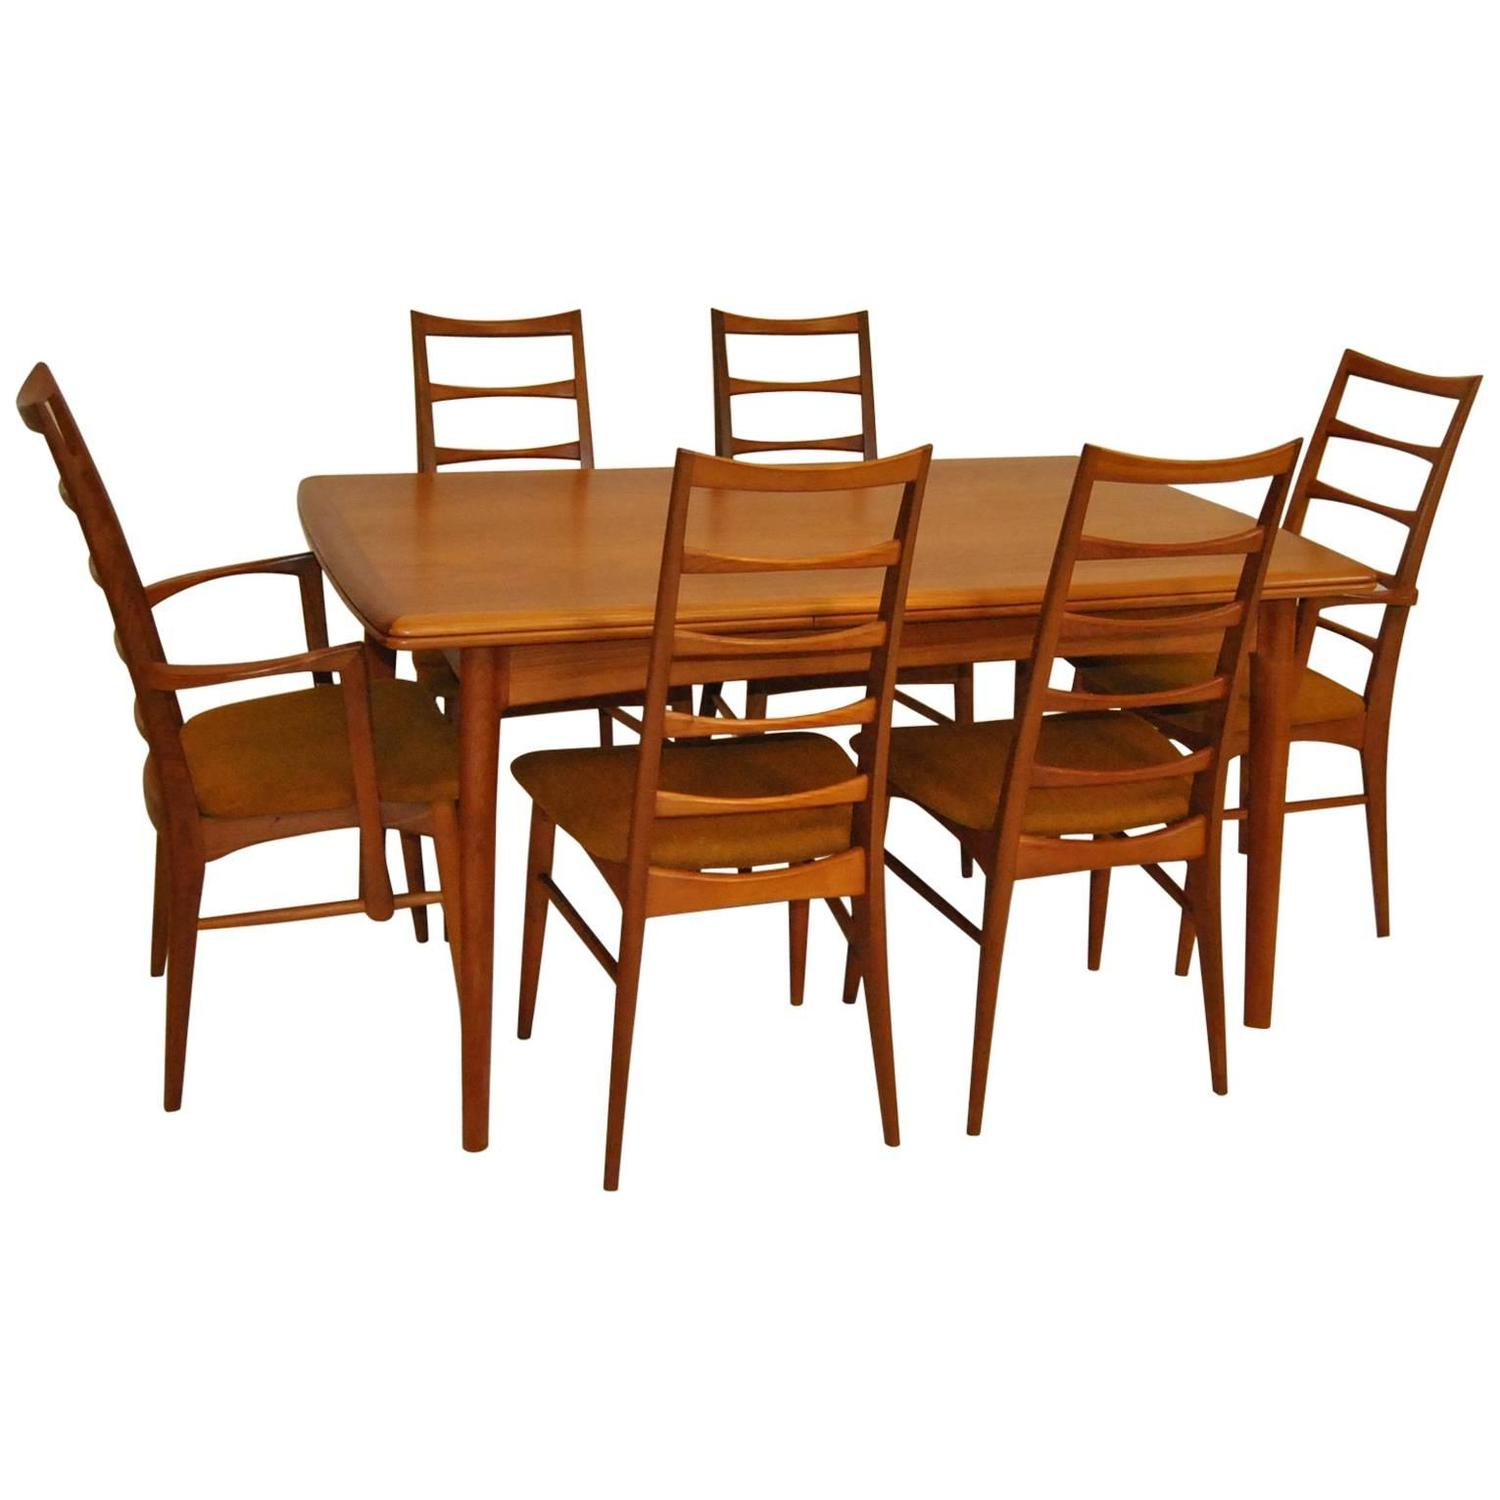 Teak extension dining table in excellent condition very clean and - Danish Modern Teak Refractory Dining Table And Six Liz Hornslet Kofoed Chairs